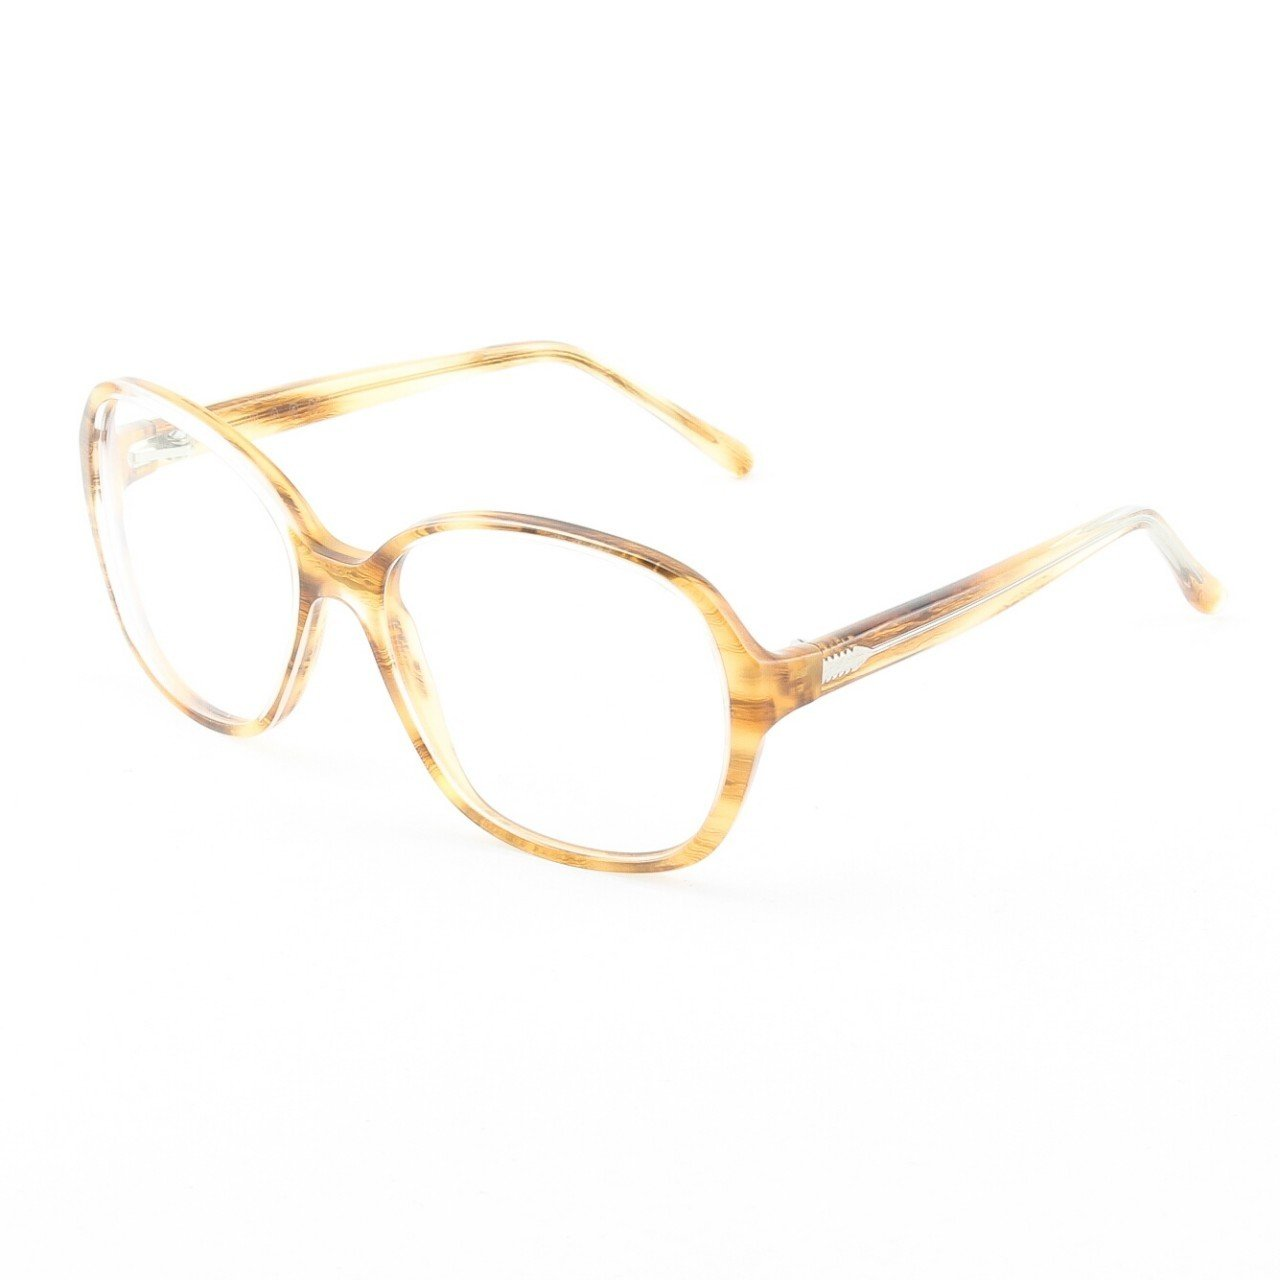 Marni MA700 Eyeglasses Col. 04 Classic Tortoise with Clear Lenses